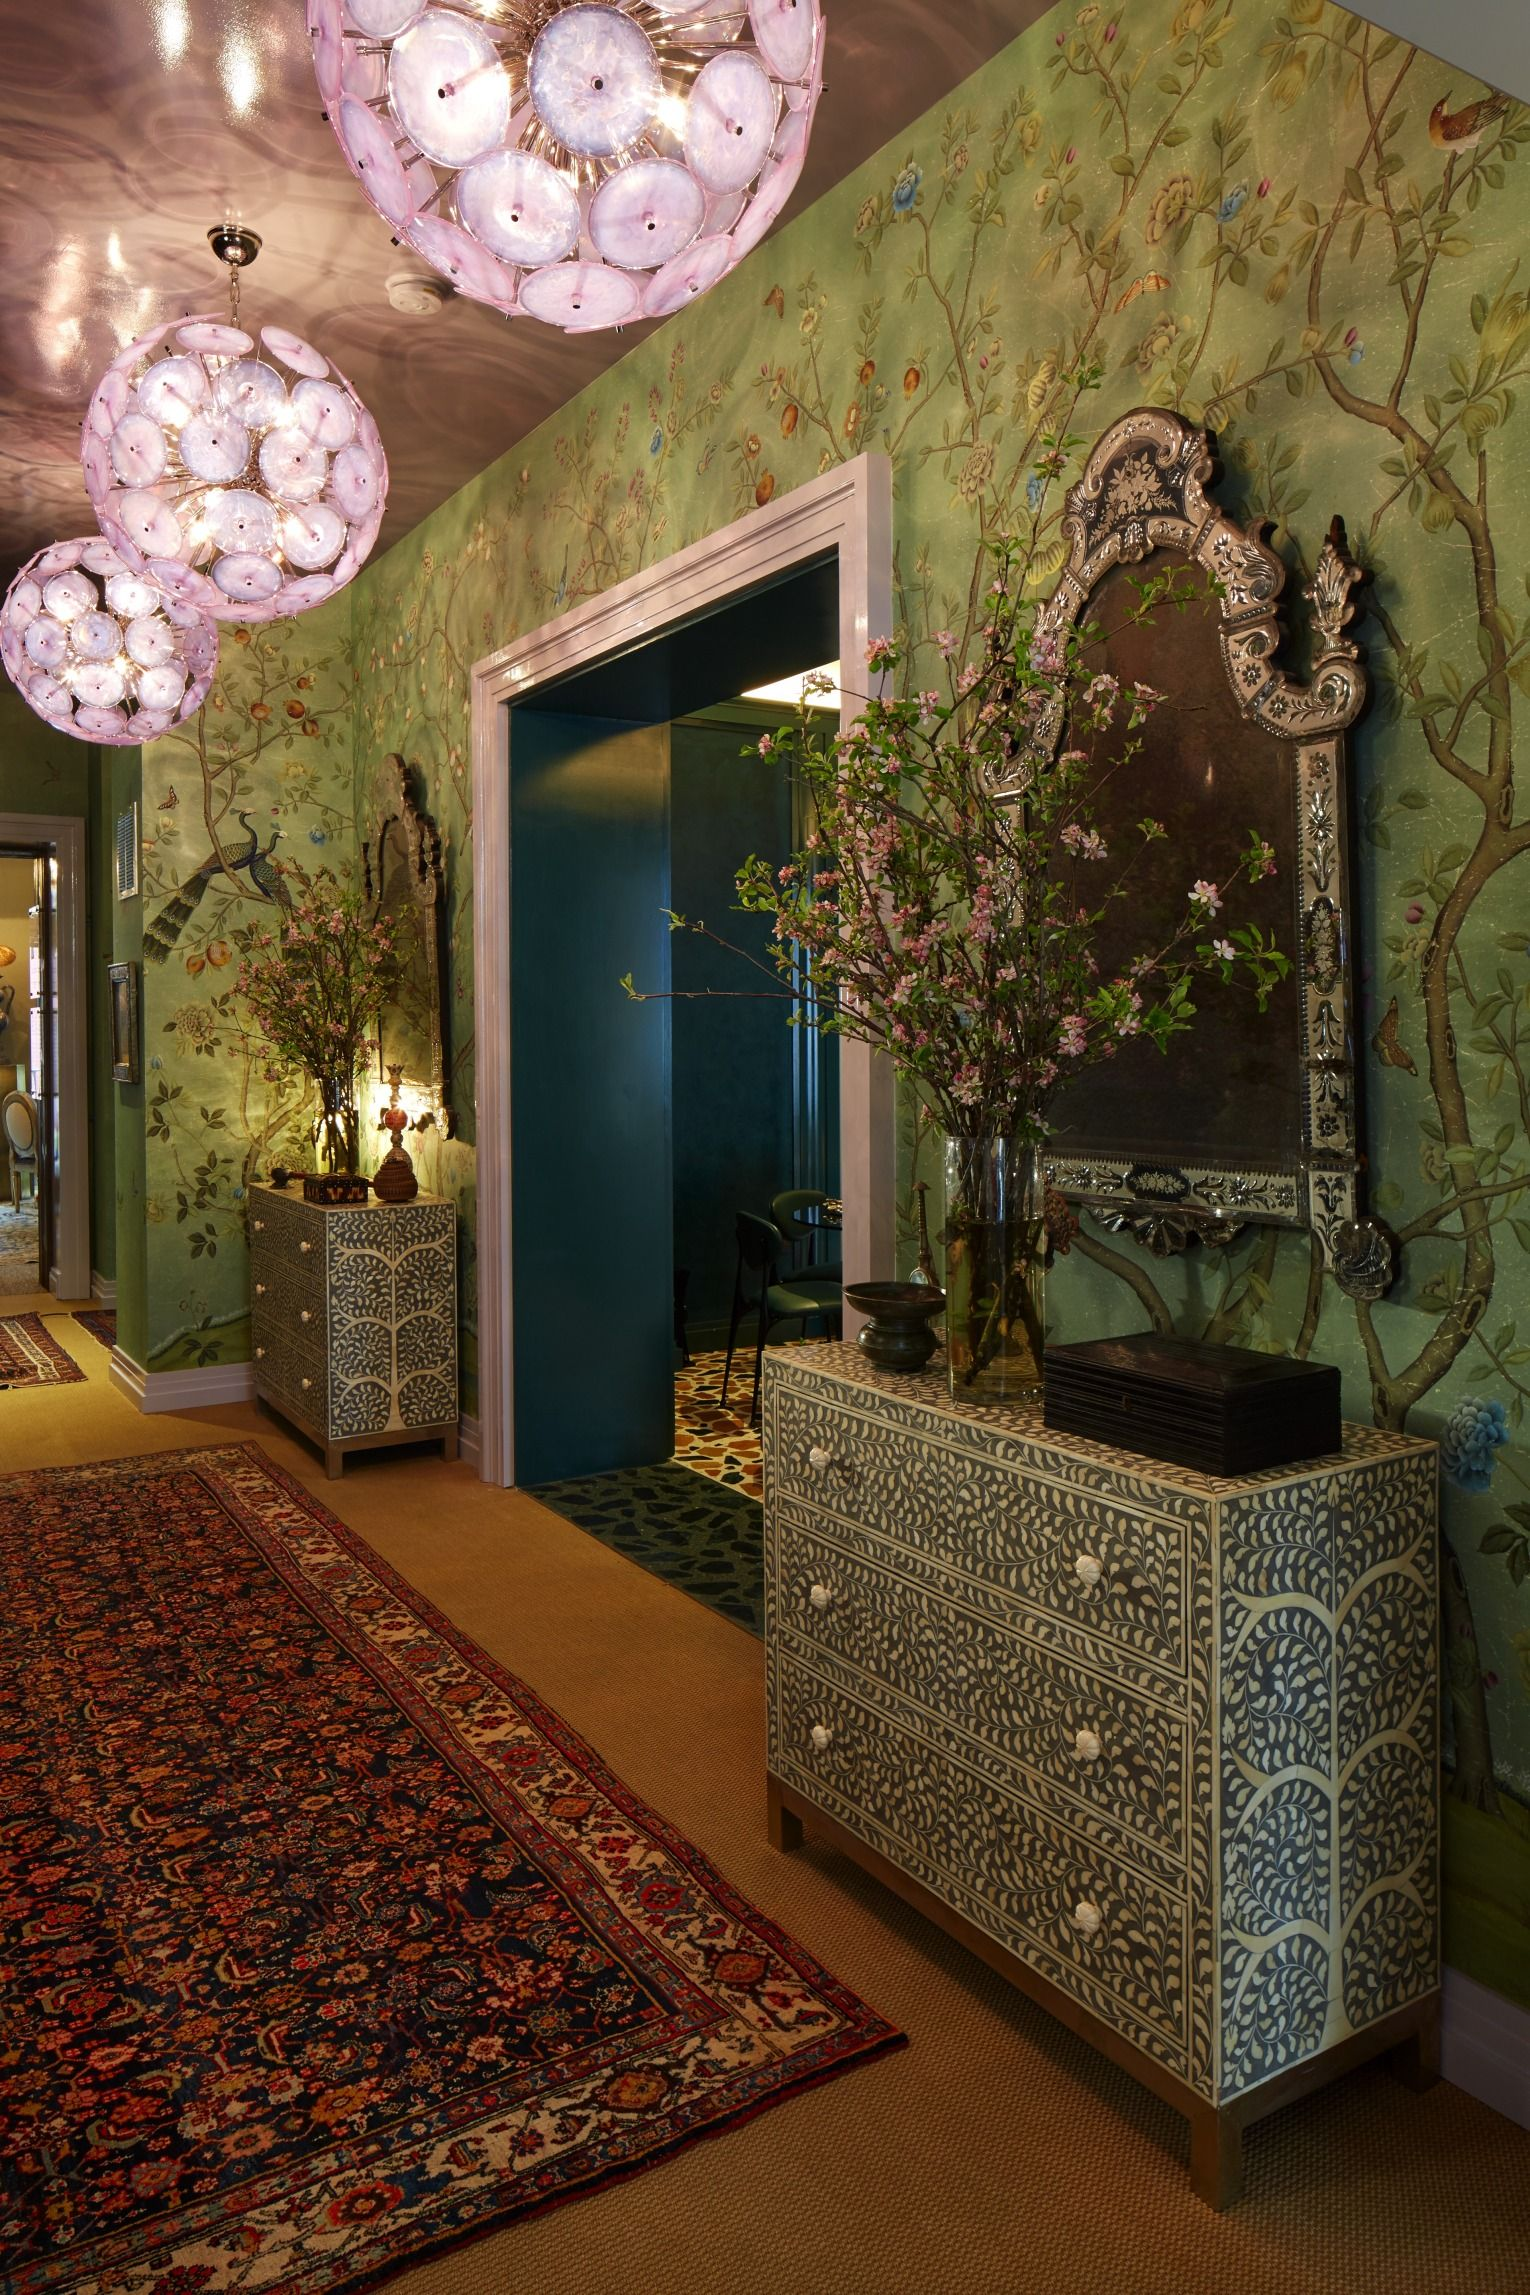 A chinoiserie inspired wall panel by de Gournay